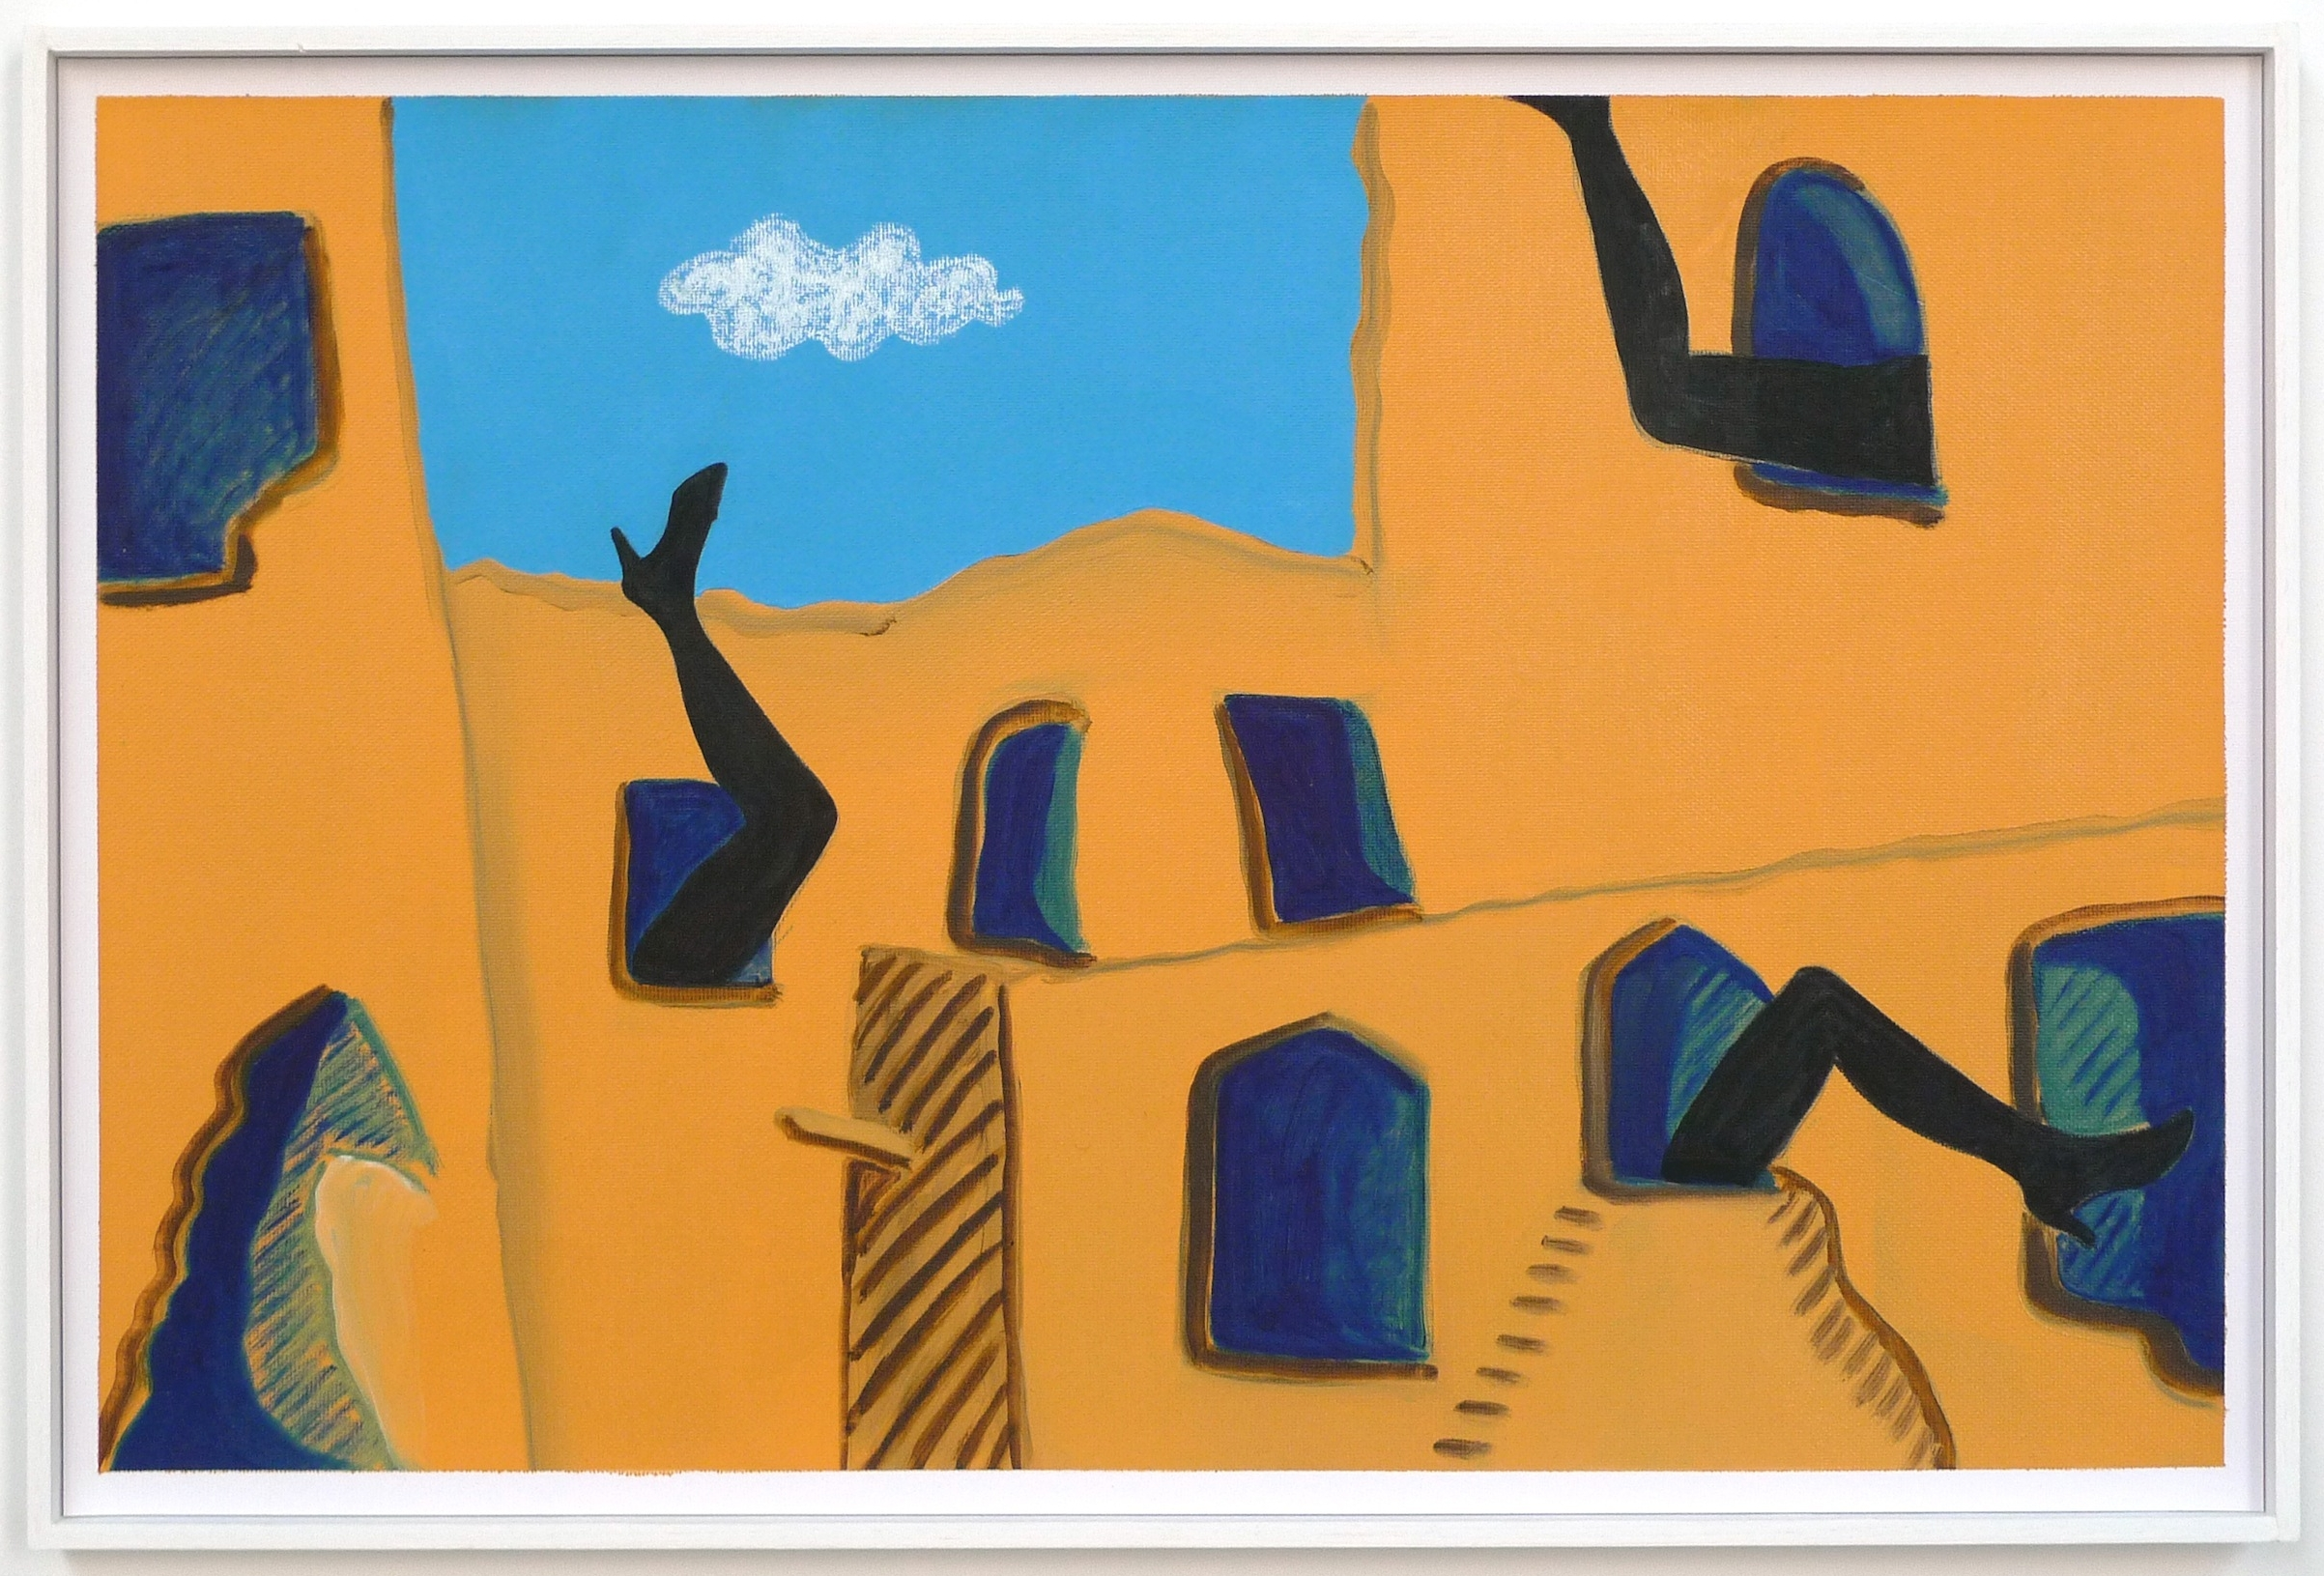 House of Actresses'Legs  2012 Oil and oil pastel on paper in artist's frame, 34.5 x 52 cm